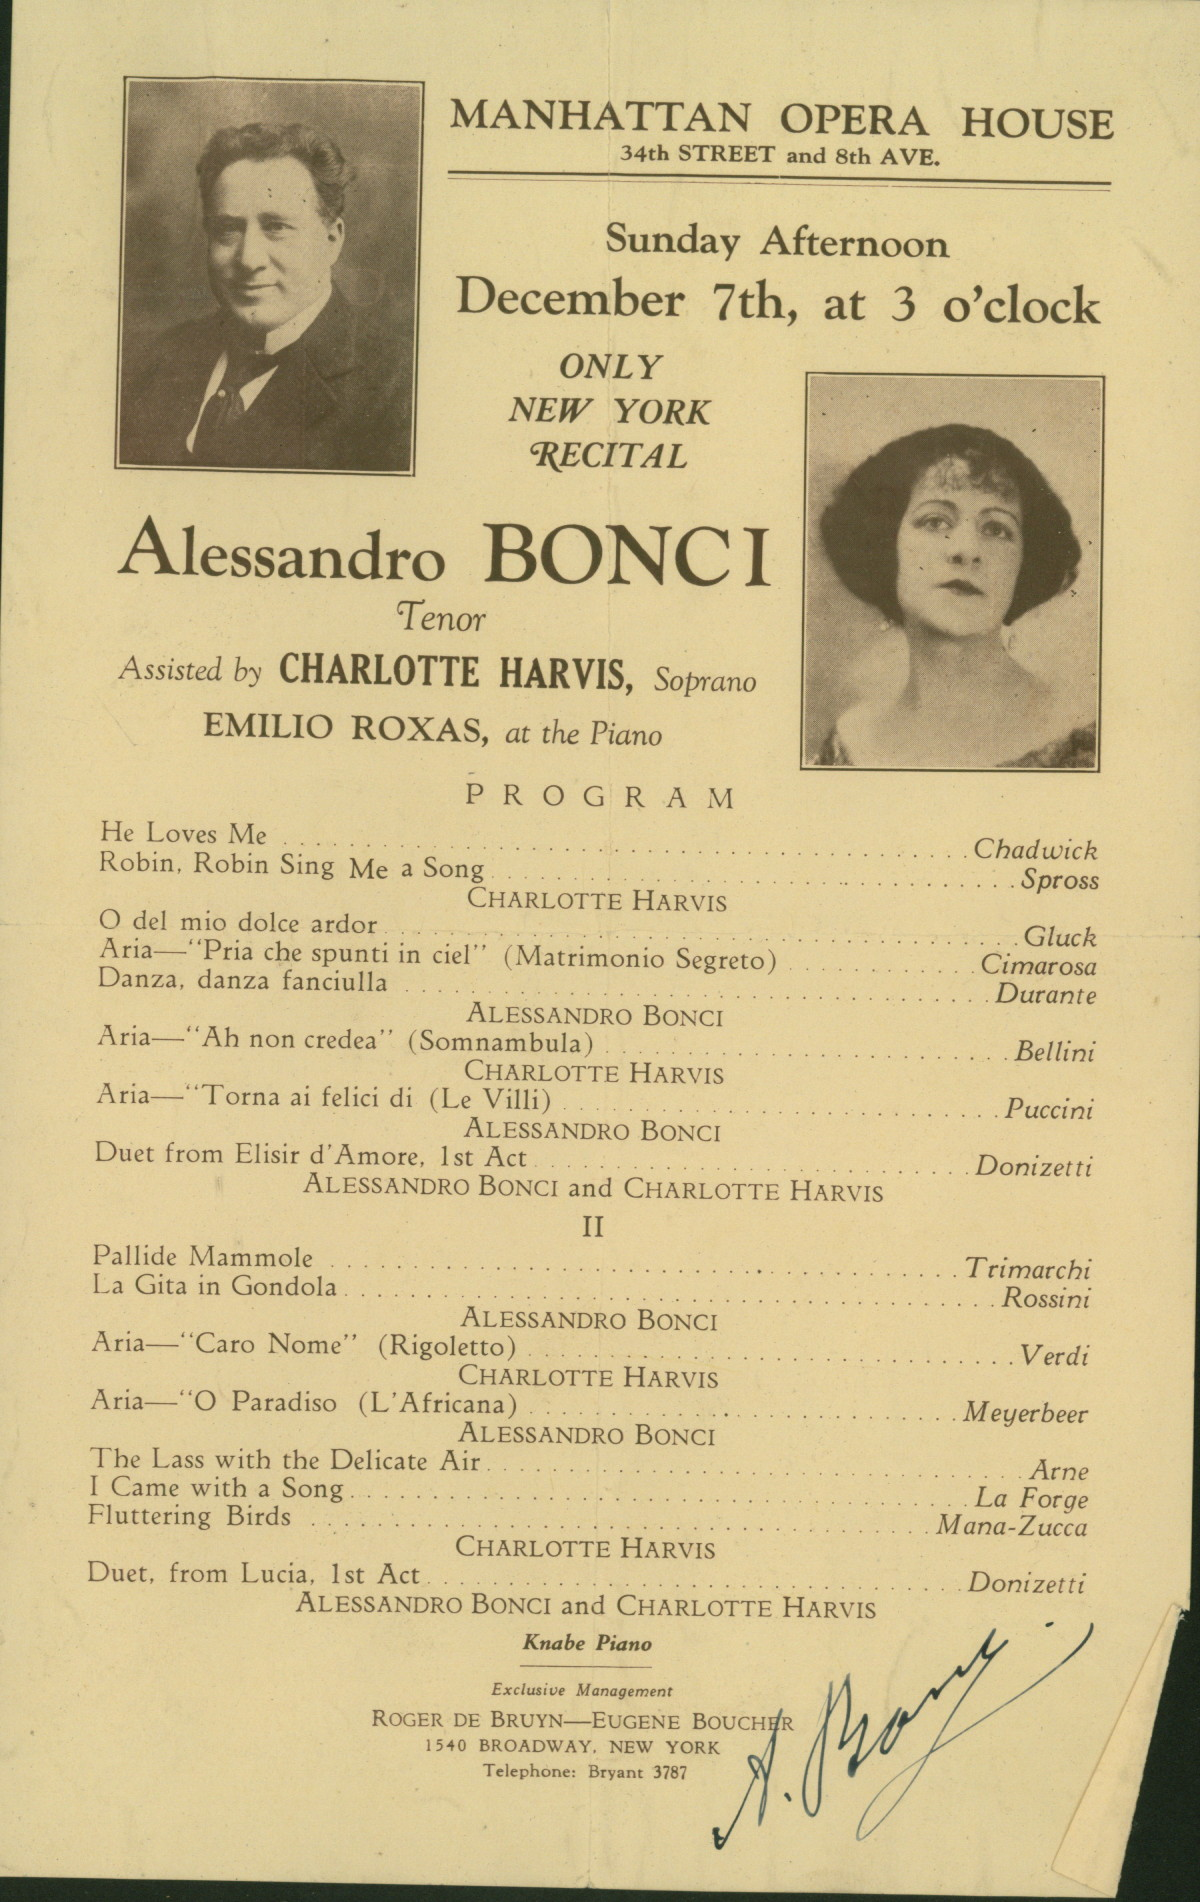 Metropolitan Opera Signed 1925 Program Of Falstaff Signed By Tibbett - Bonci Recital On Verso. - (2404)